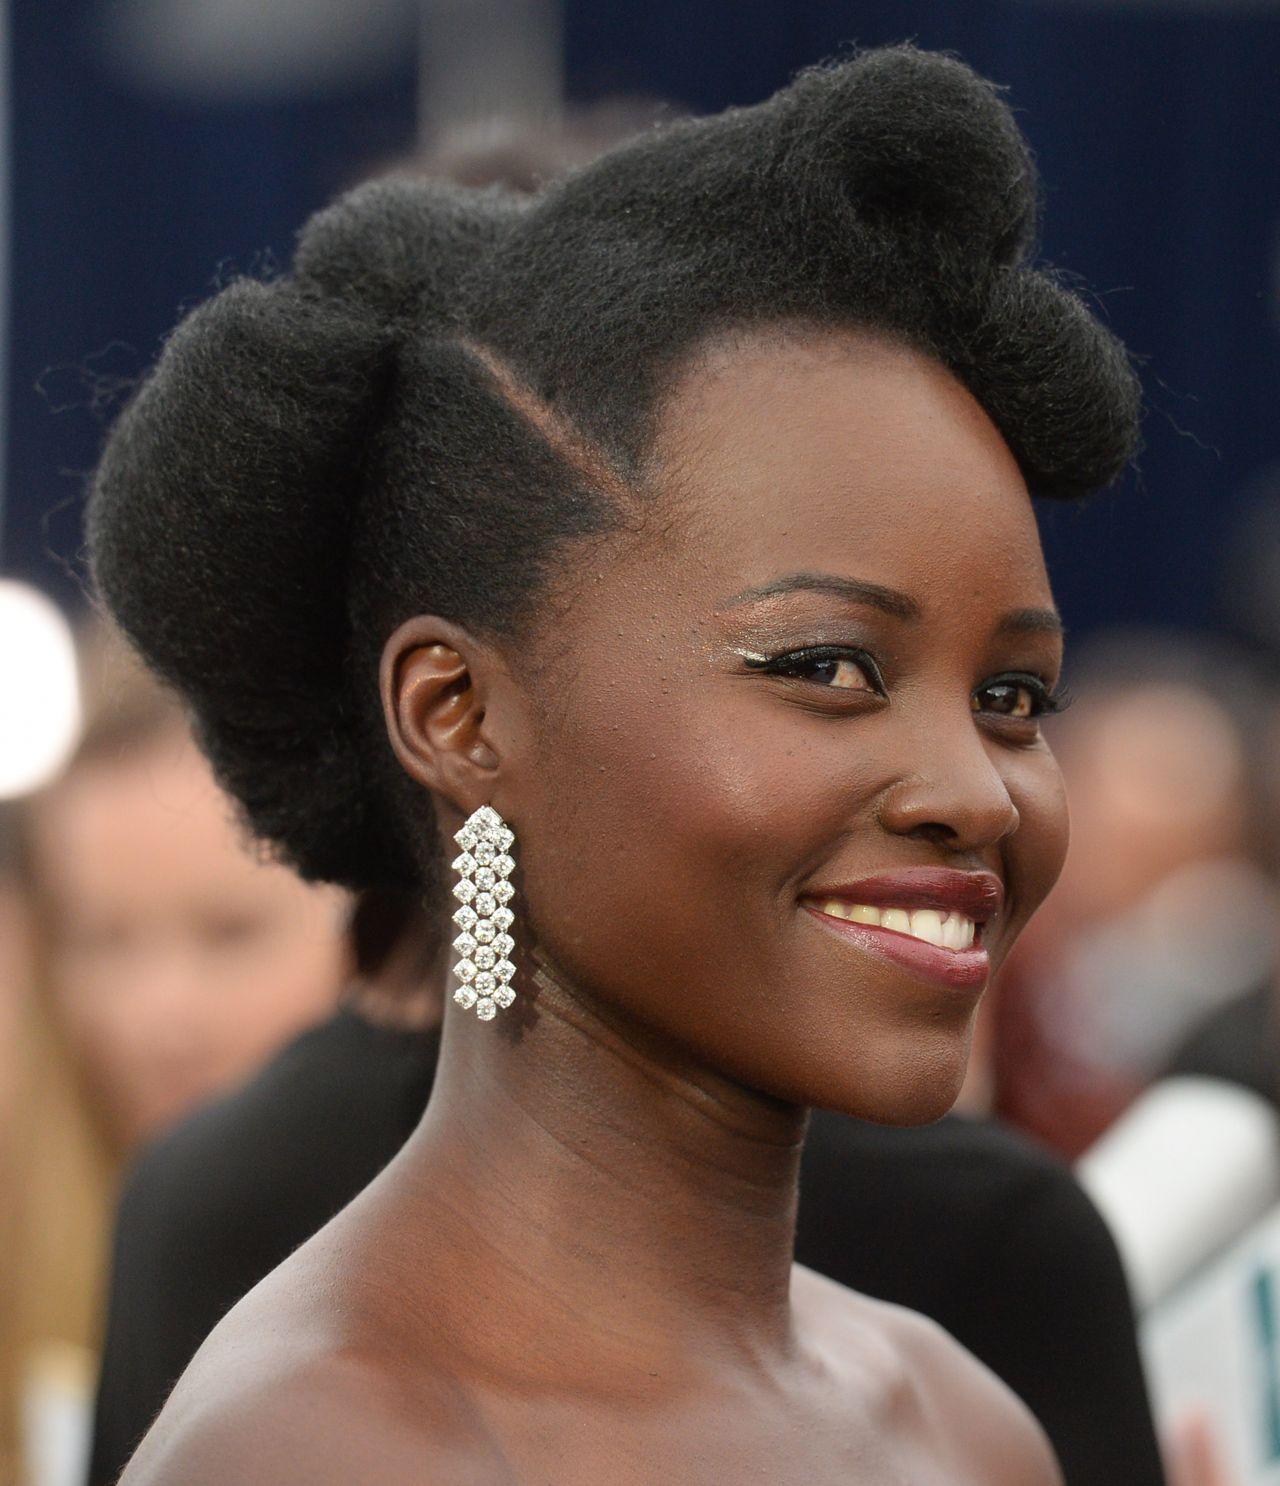 Lupita Nyong'o - 26th Annual Screen Actors Guild Awards at the Shrine Auditorium in Los Angeles